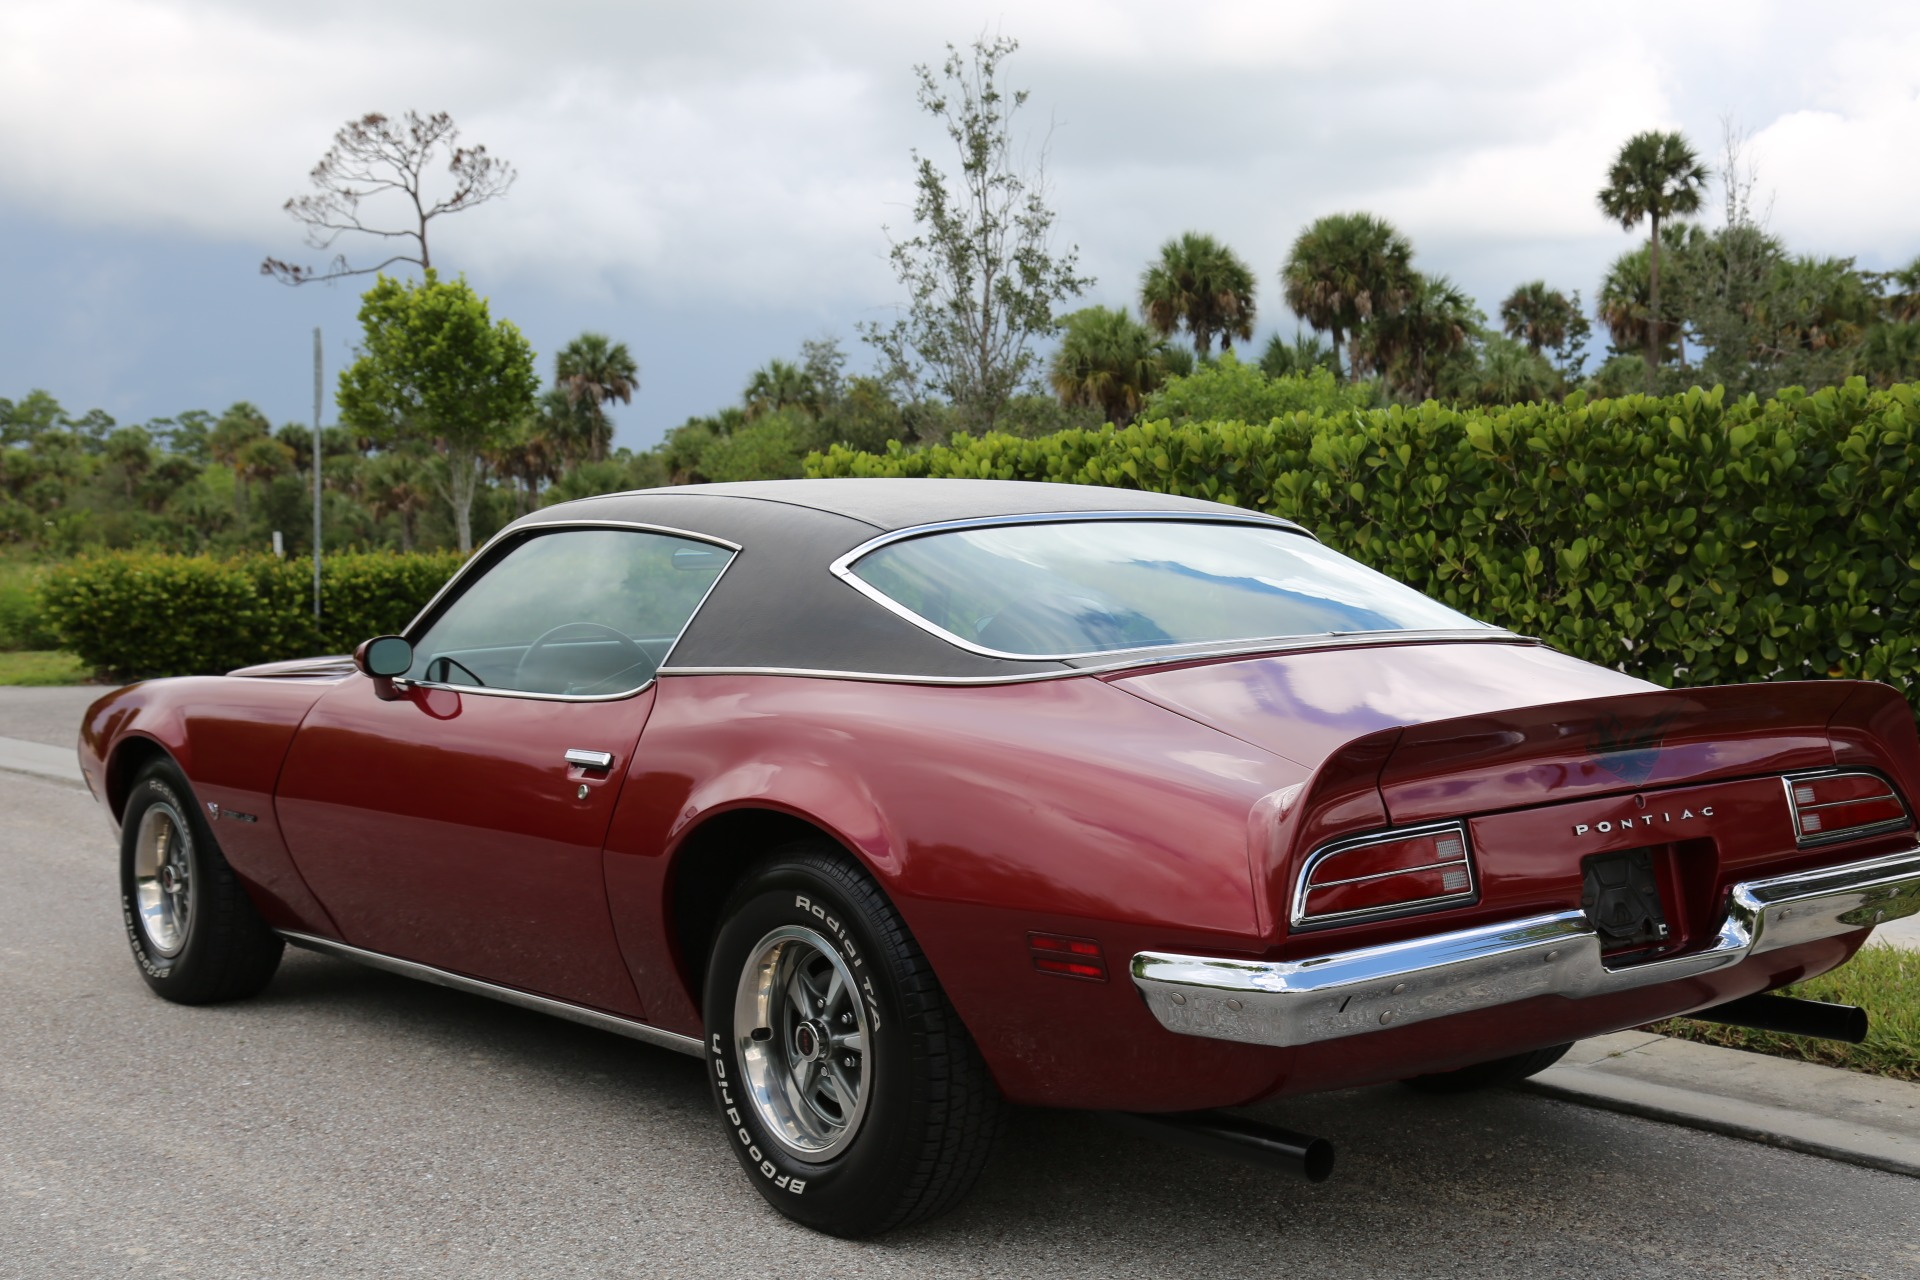 Used 1973 Pontiac Firebird Firebird for sale Sold at Muscle Cars for Sale Inc. in Fort Myers FL 33912 3